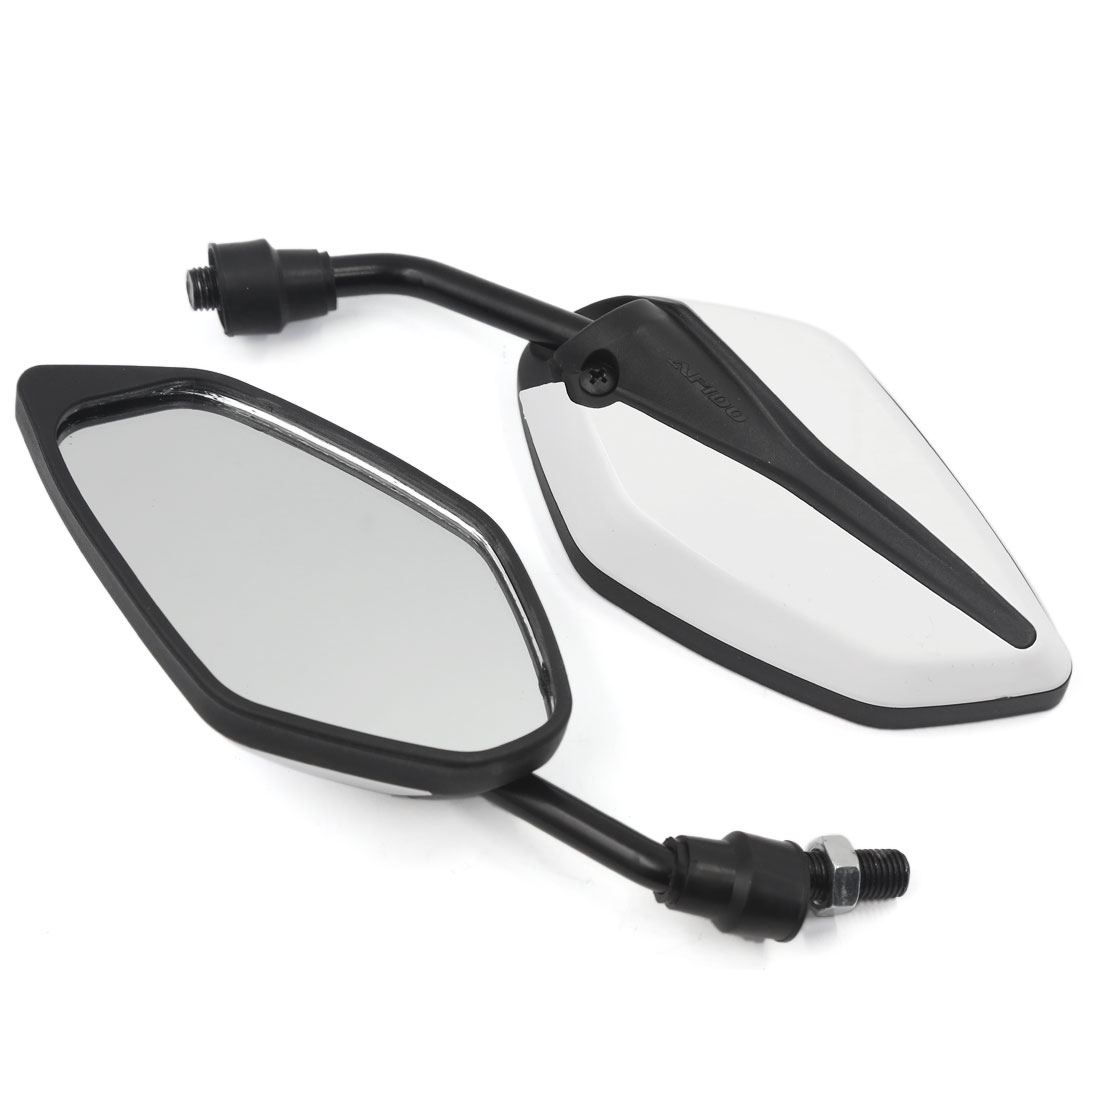 Universal Motorcycle Chopper Cruiser Rearview Side Mirrors 10mm White Black 2 Pcs